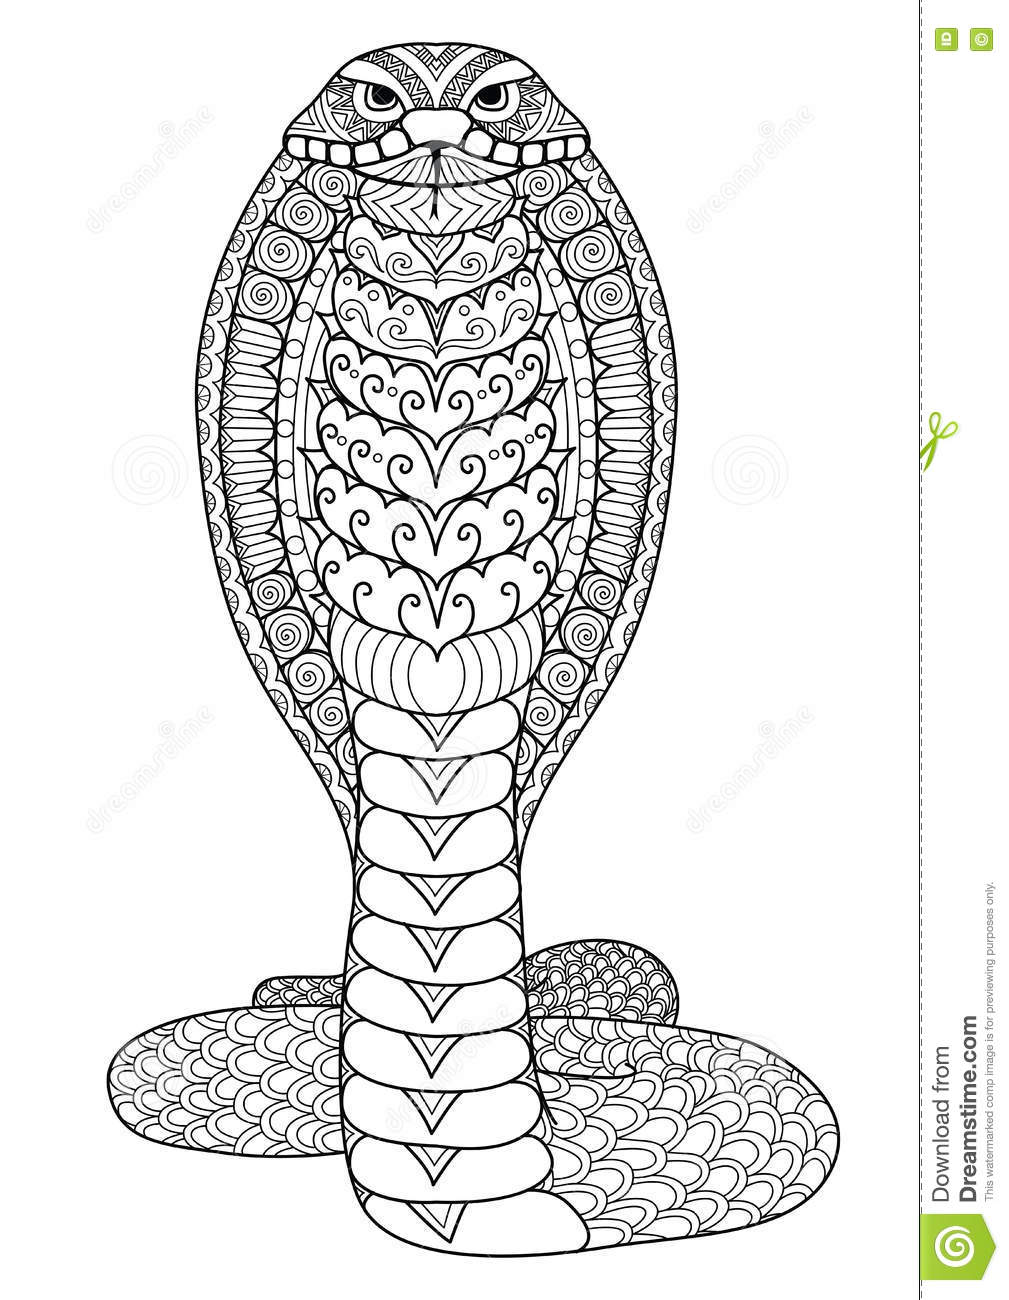 Download Clean Lines Doodle Art Design Of Cobra Snake For Coloring Book T Shirt